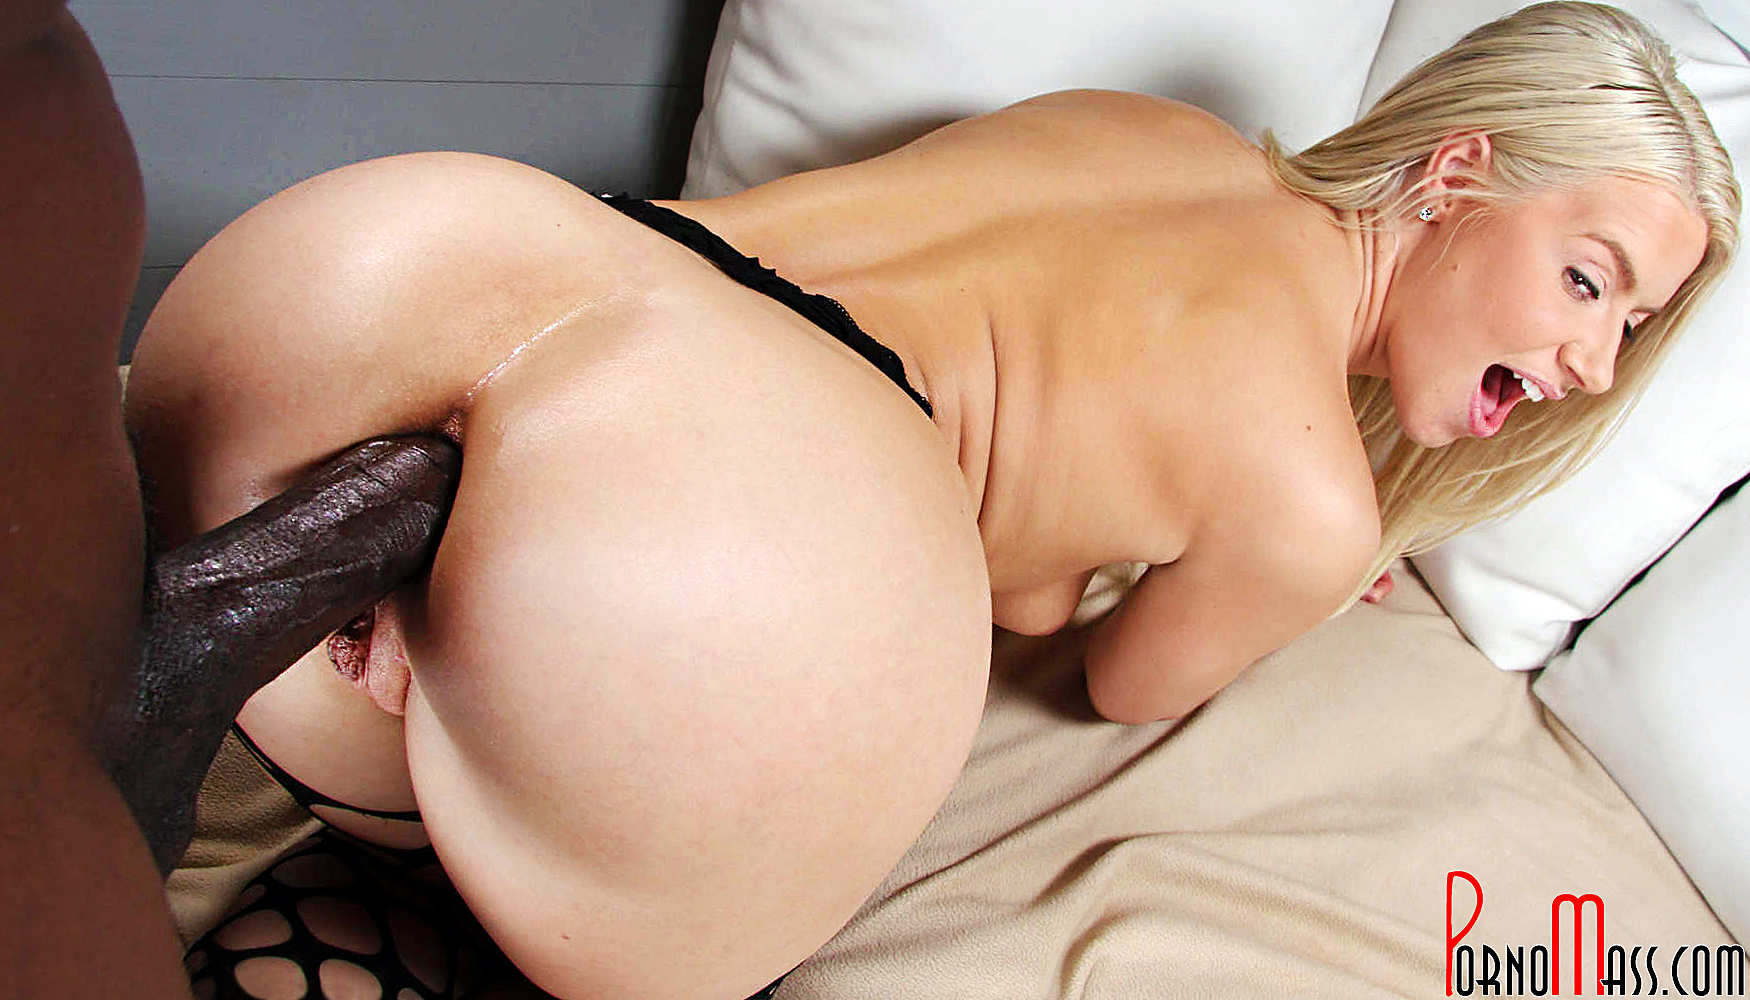 Webcam Scandal Kendra Sunderland Oregon State - YouPorncom